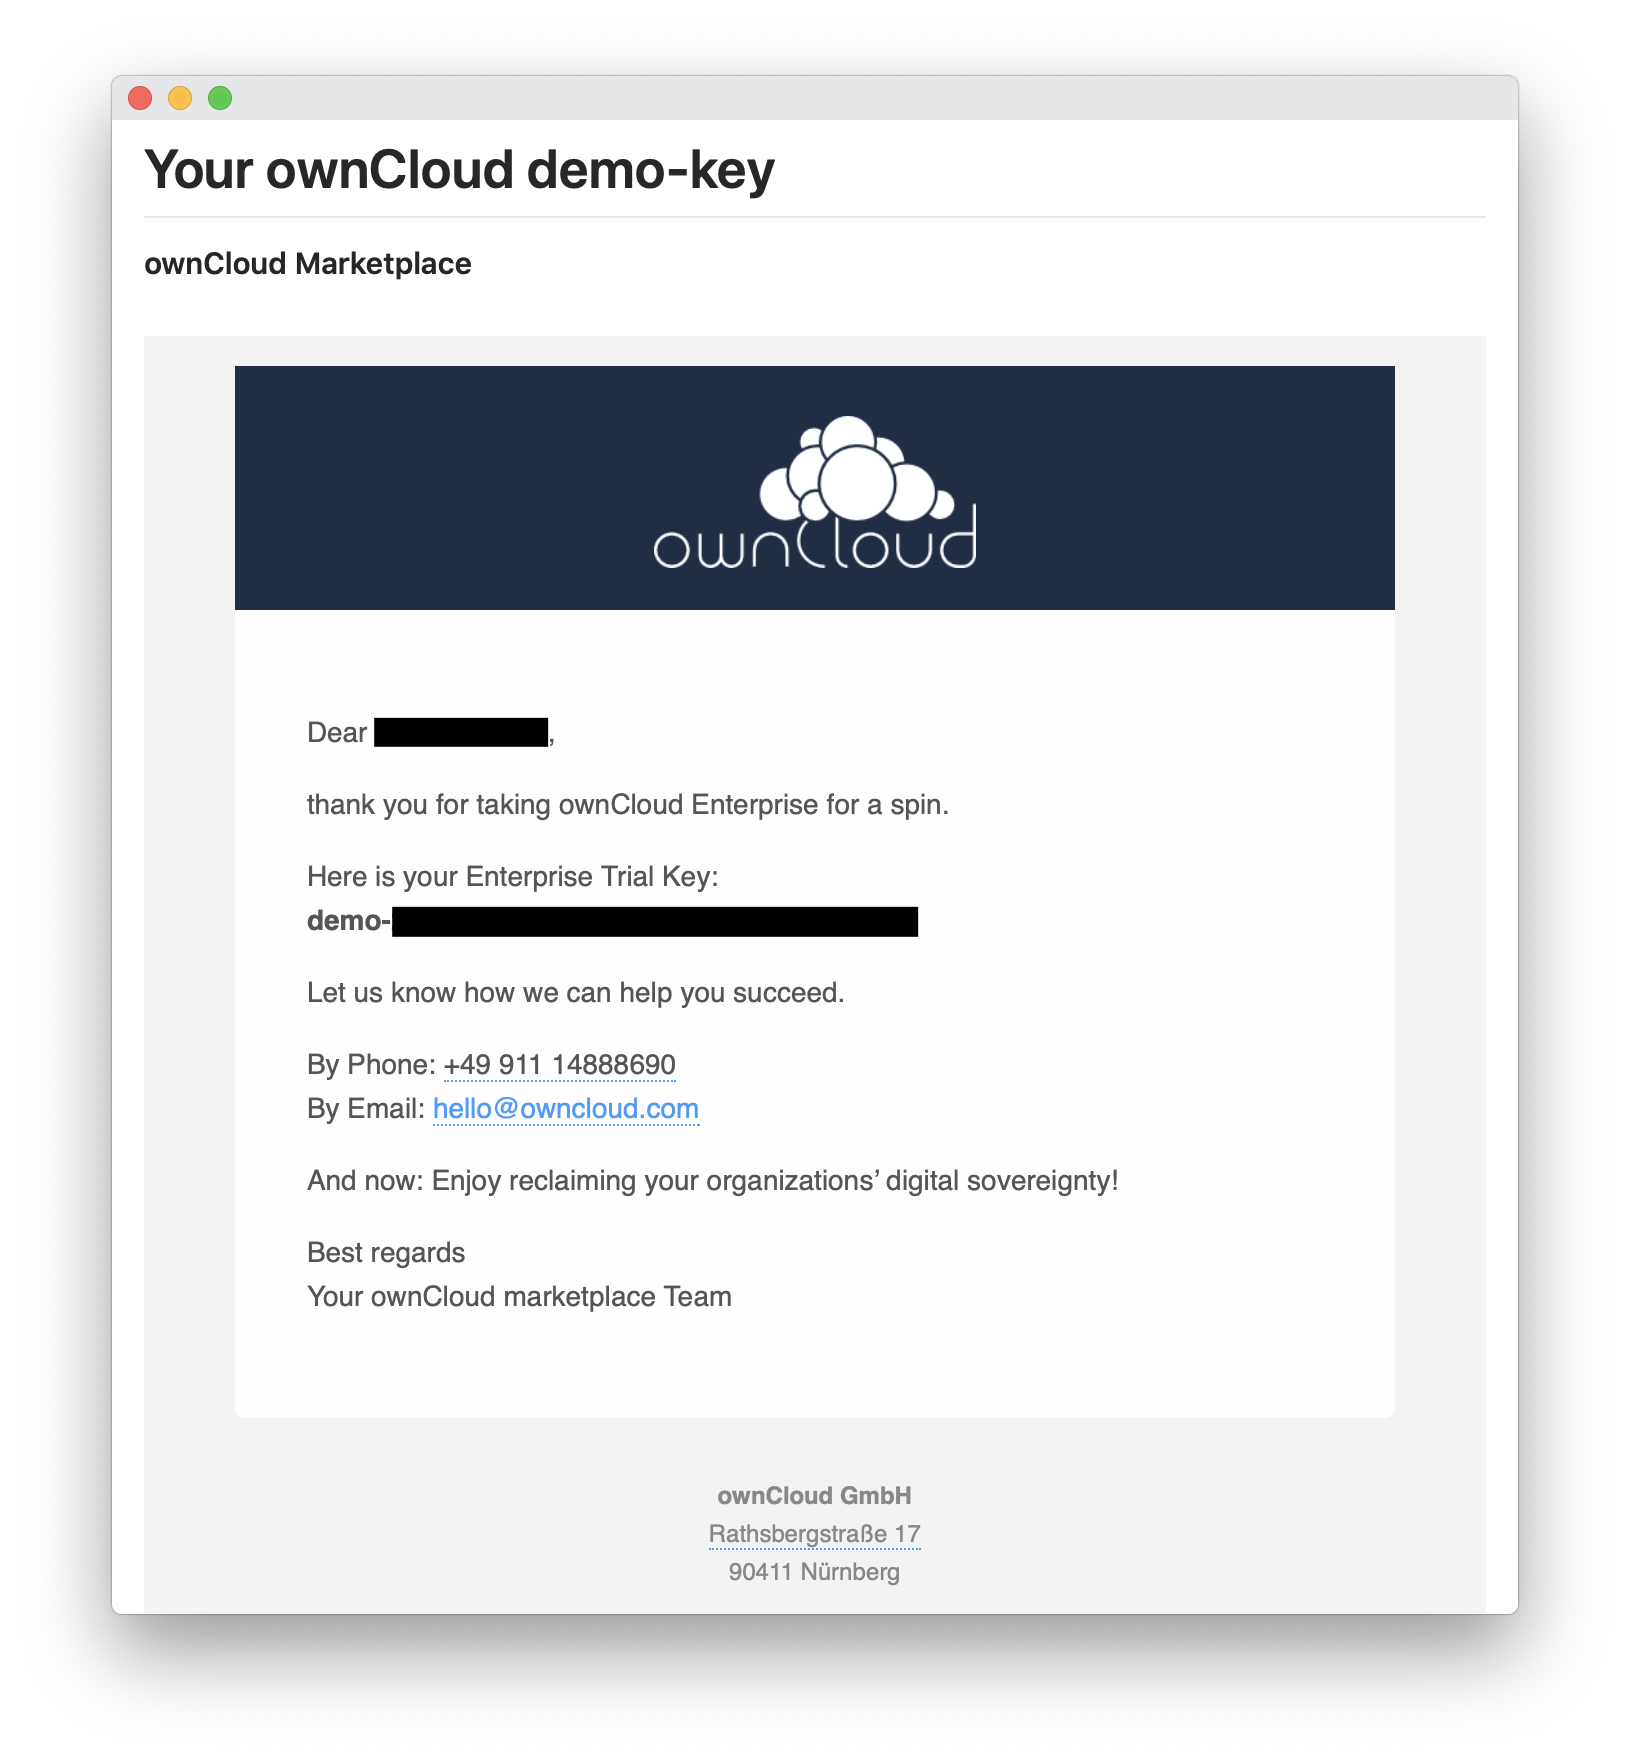 You will receive an email with a license key for your ownCloud Enterprise trial